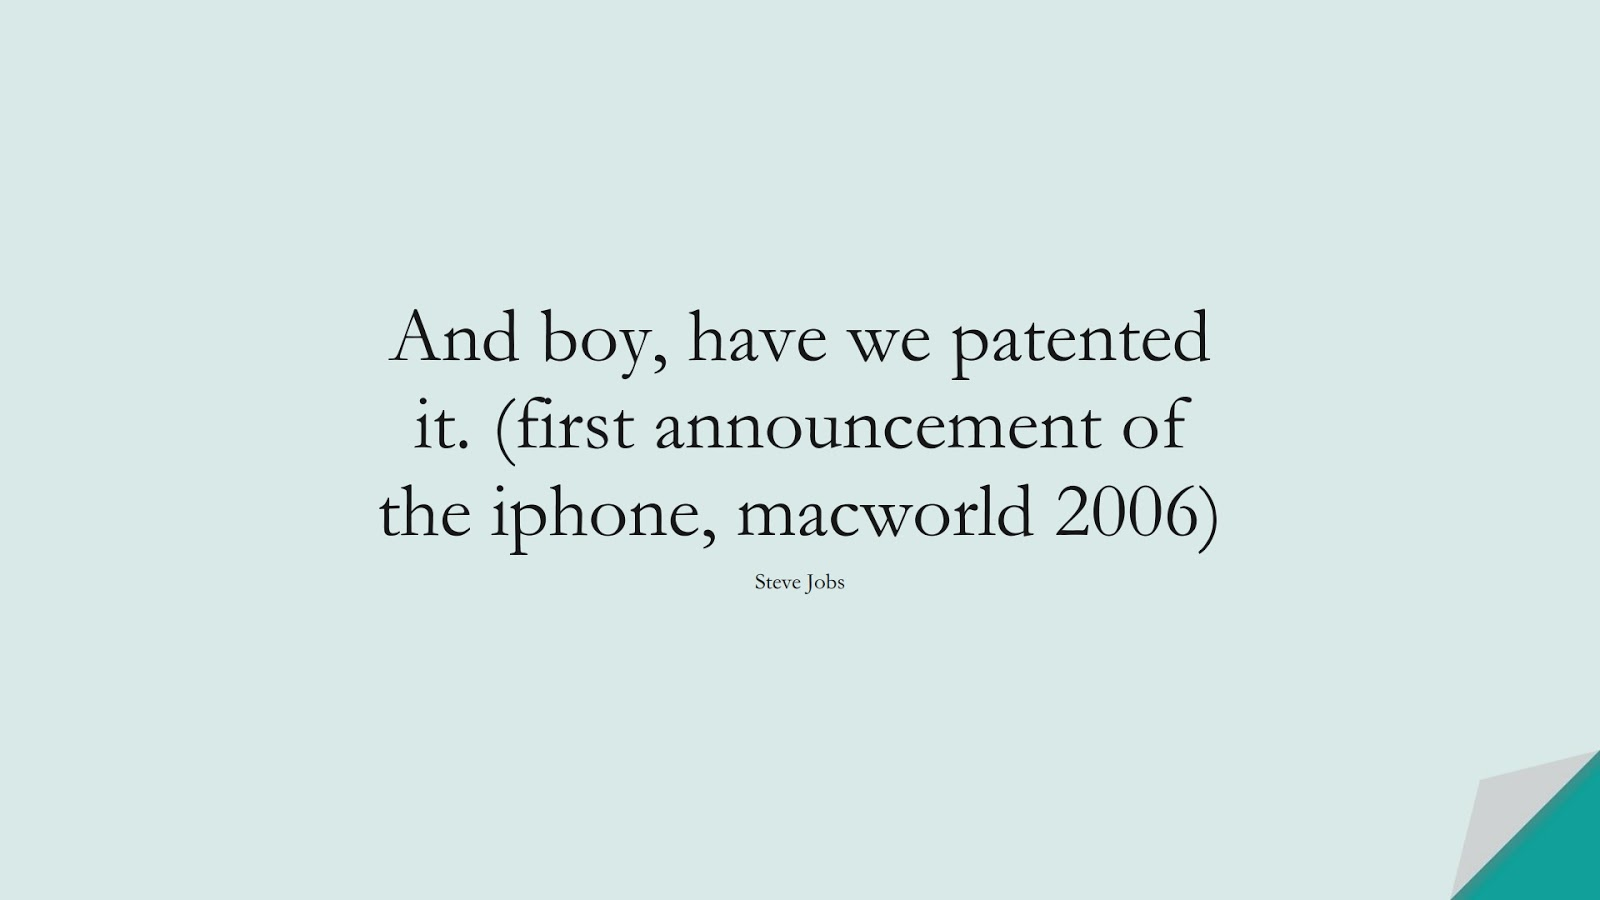 And boy, have we patented it. (first announcement of the iphone, macworld 2006) (Steve Jobs);  #SteveJobsQuotes